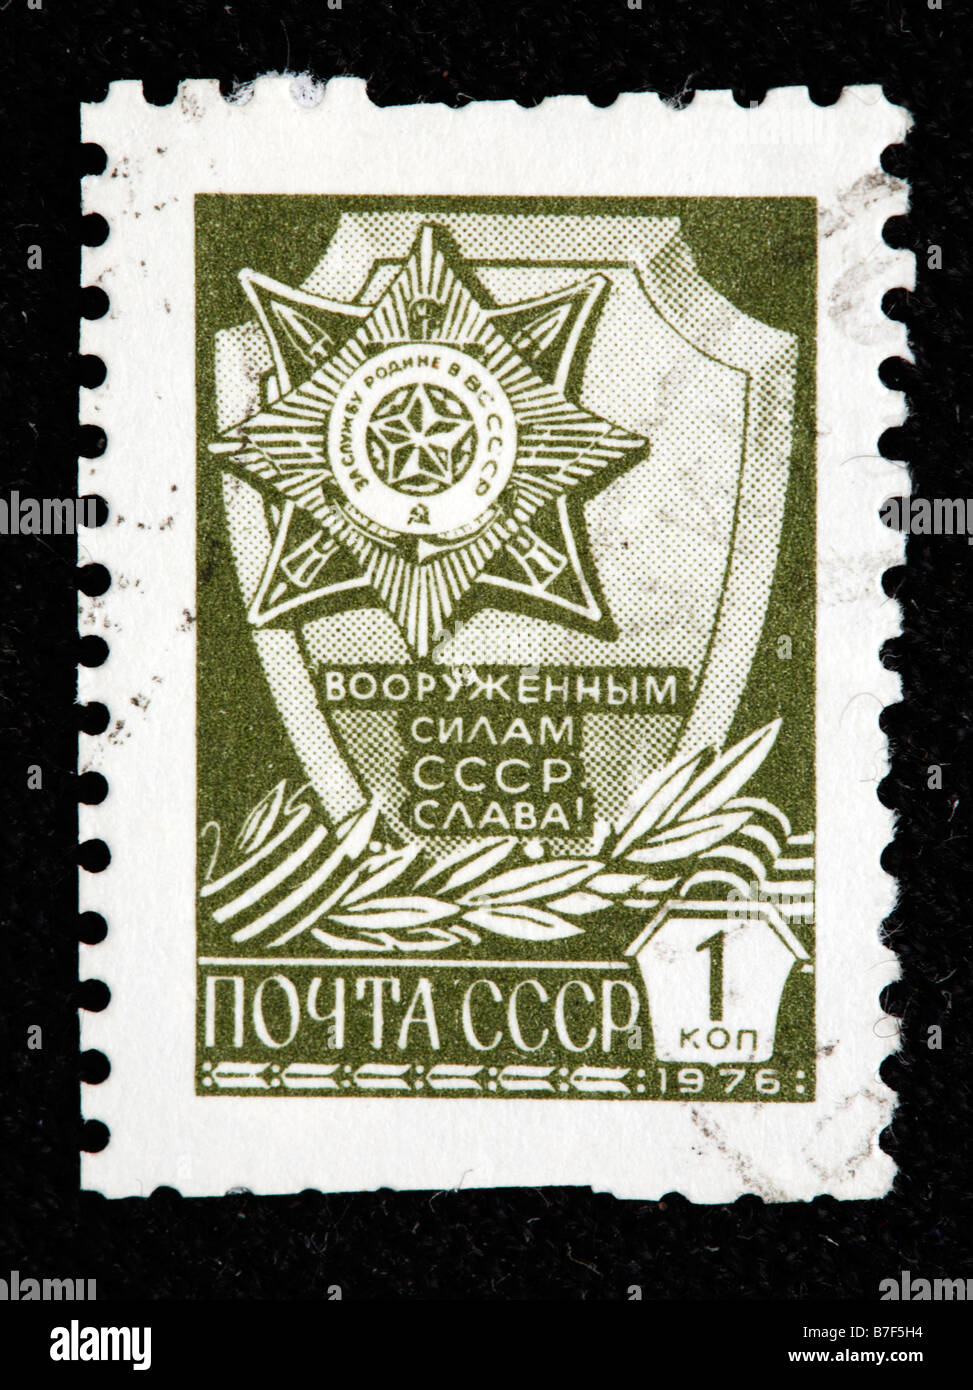 Soviet, Red army, postage stamp, USSR, 1976 - Stock Image